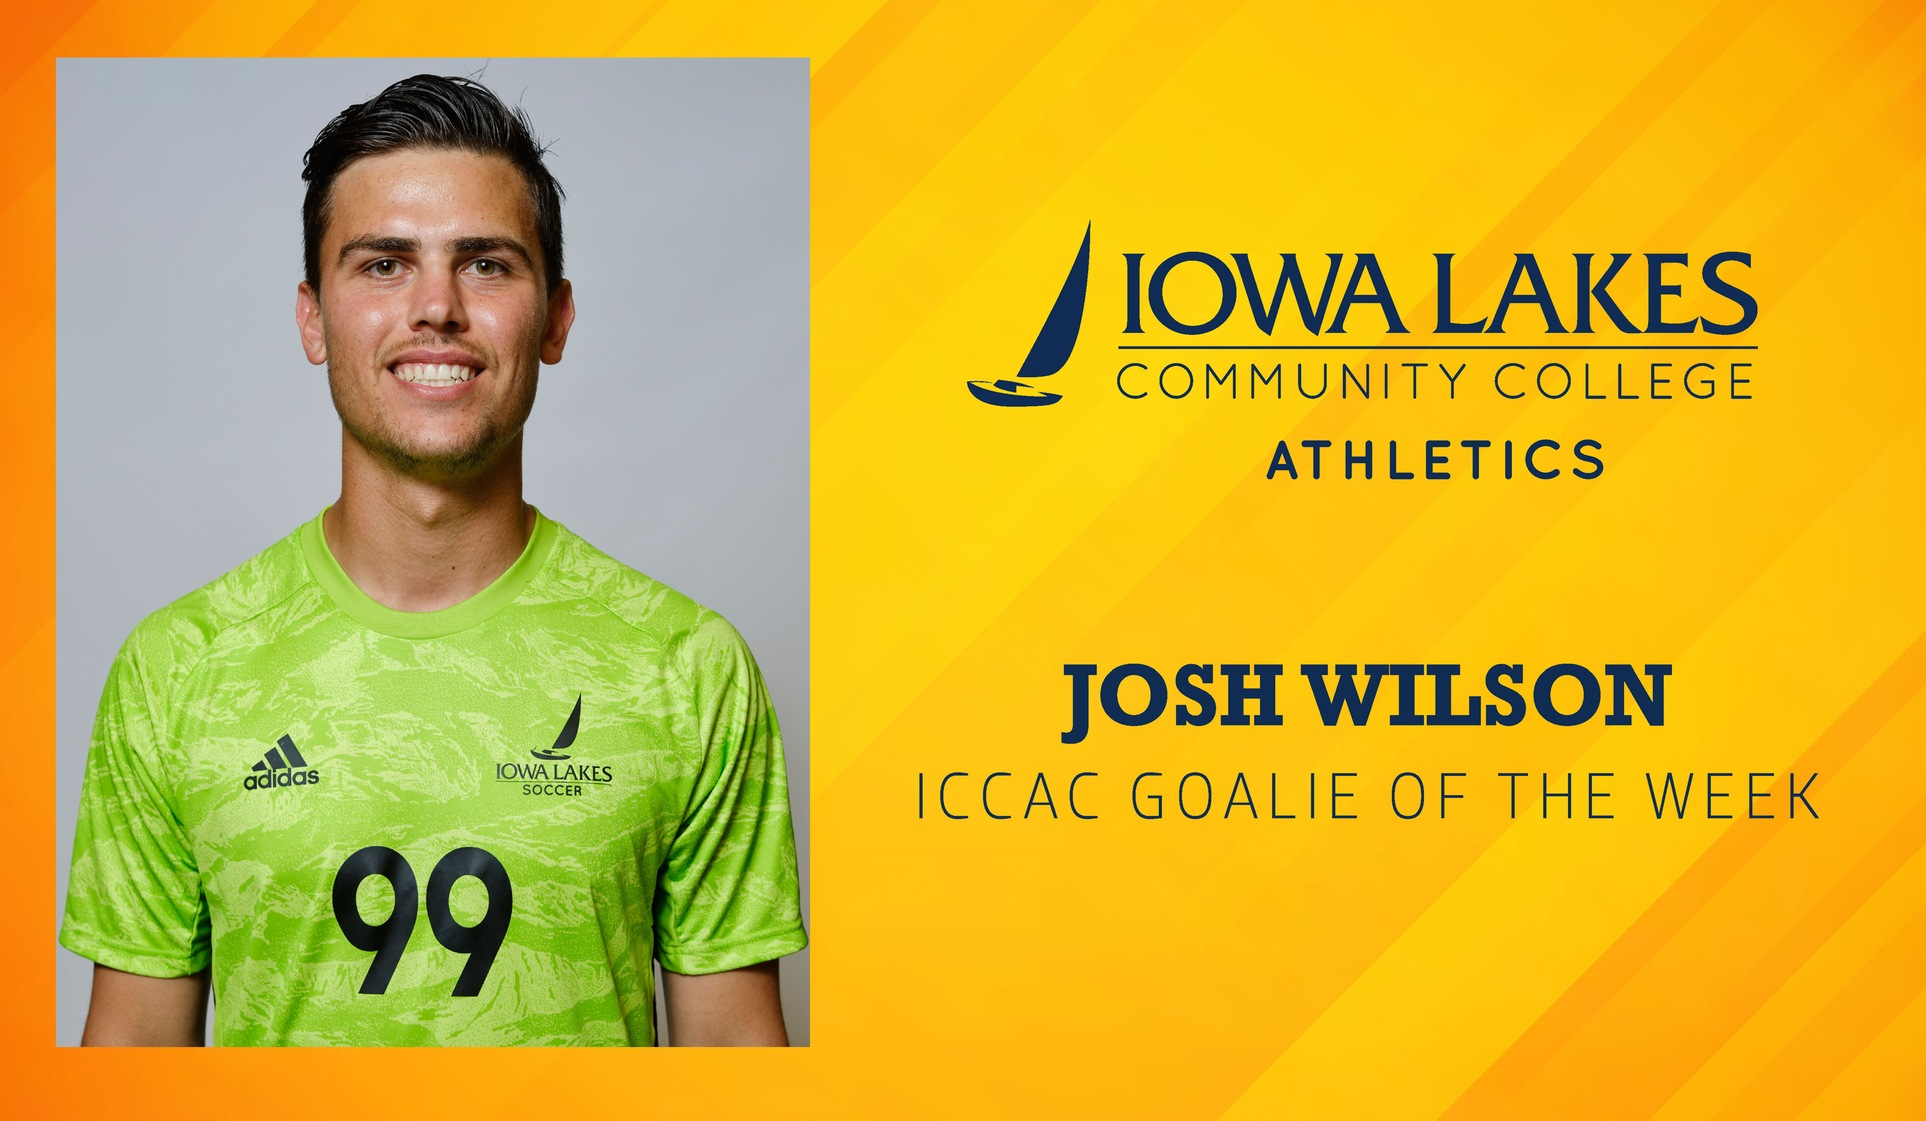 JOSH WILSON NAMED ICCAC GOALIE OF THE WEEK FOR THIRD TIME THIS YEAR